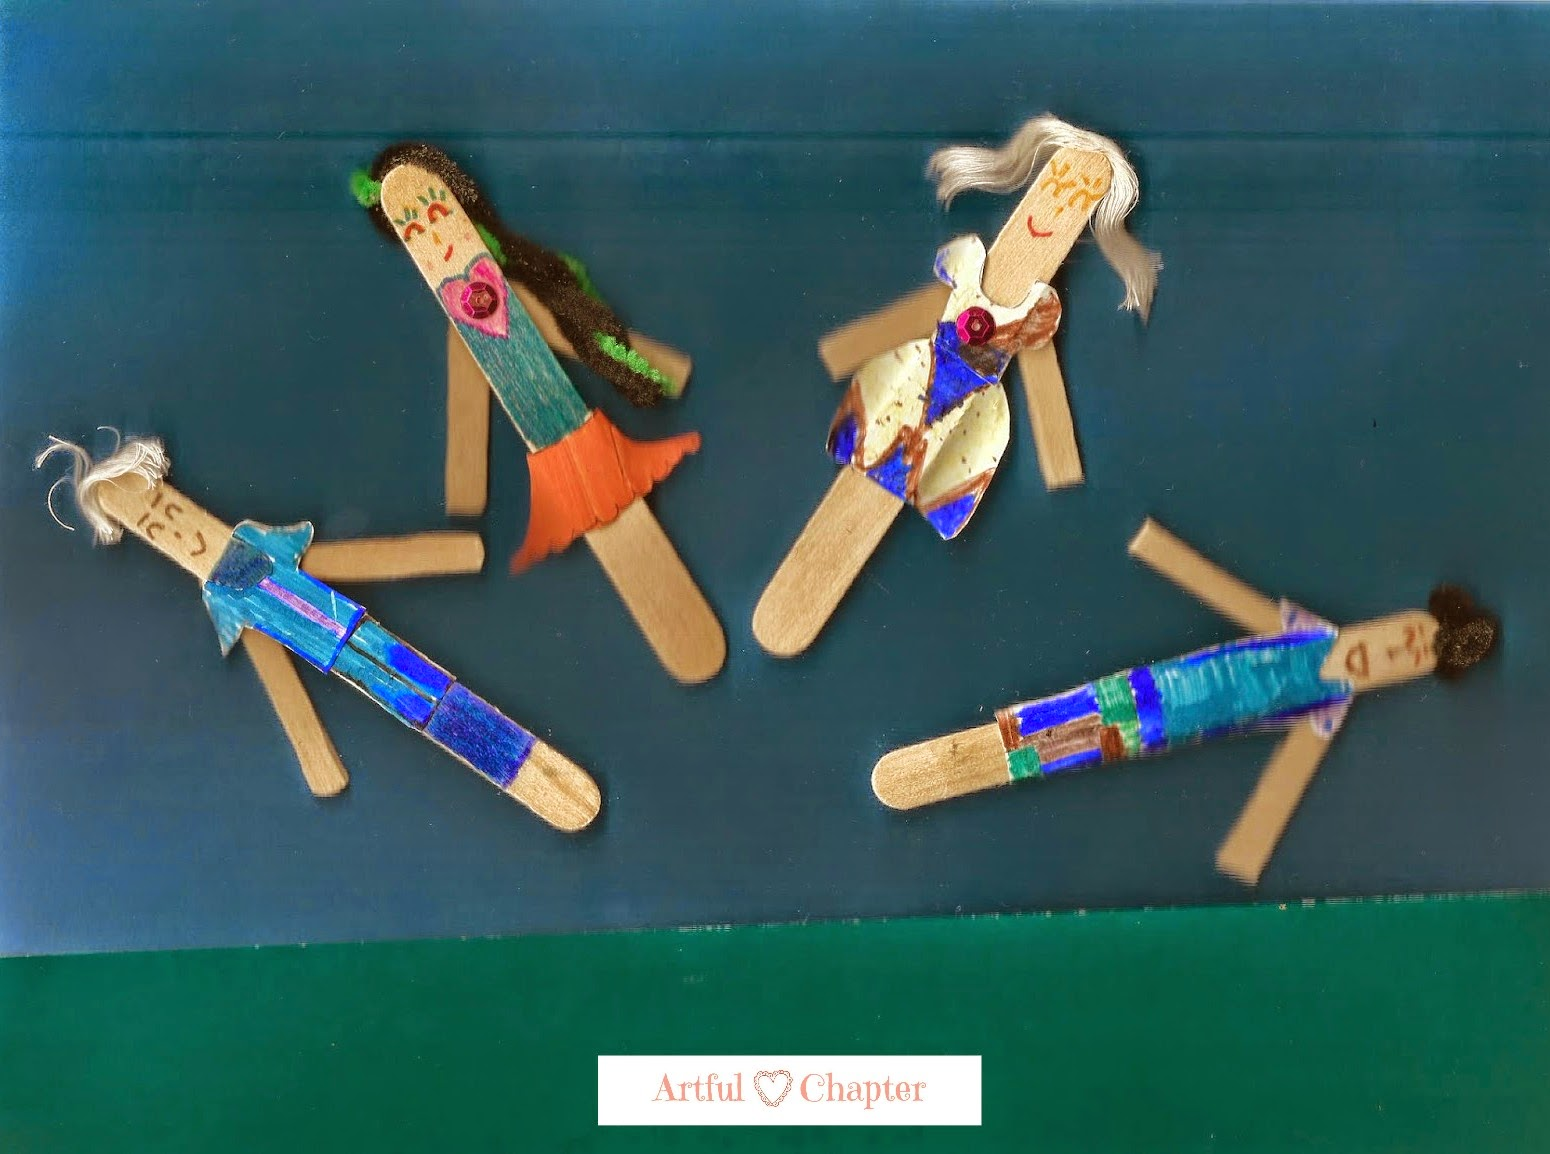 The Popsicle Stick Family Artful Chapter